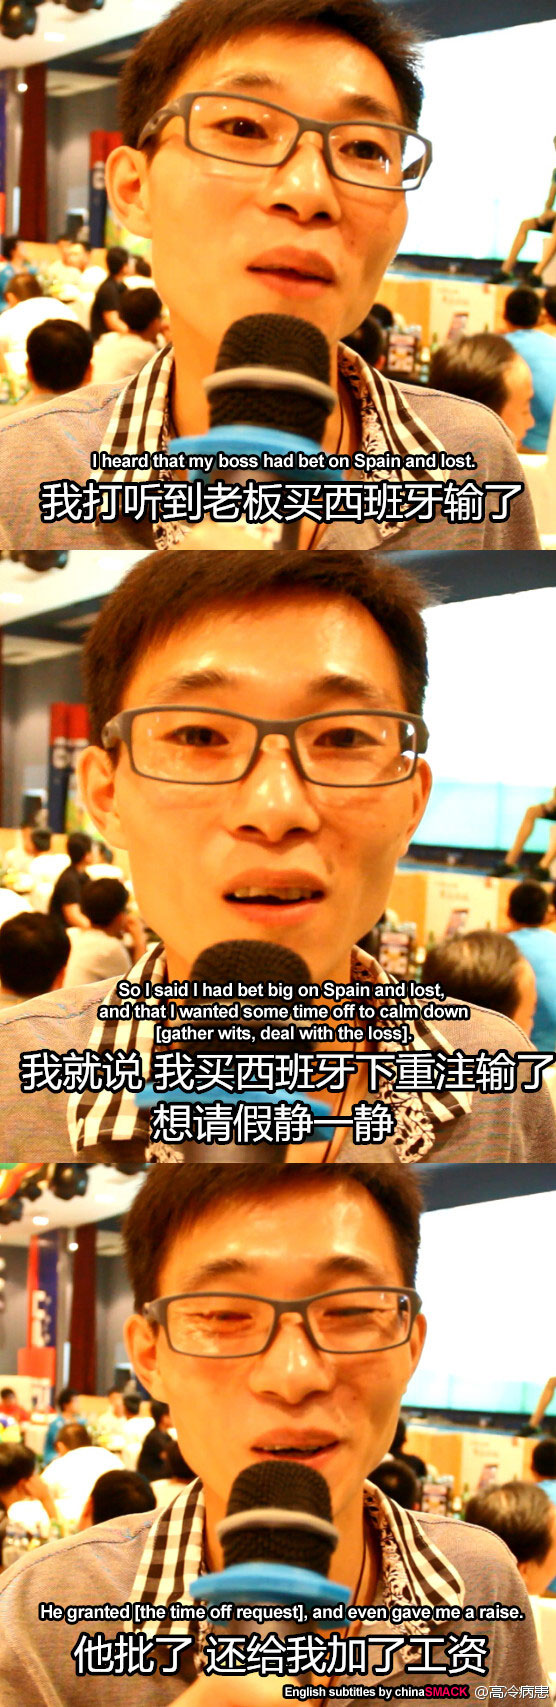 chinese-netizen-excuses-for-bosses-wives-to-watch-world-cup-03-lost-bet-on-spain-english-subtitles